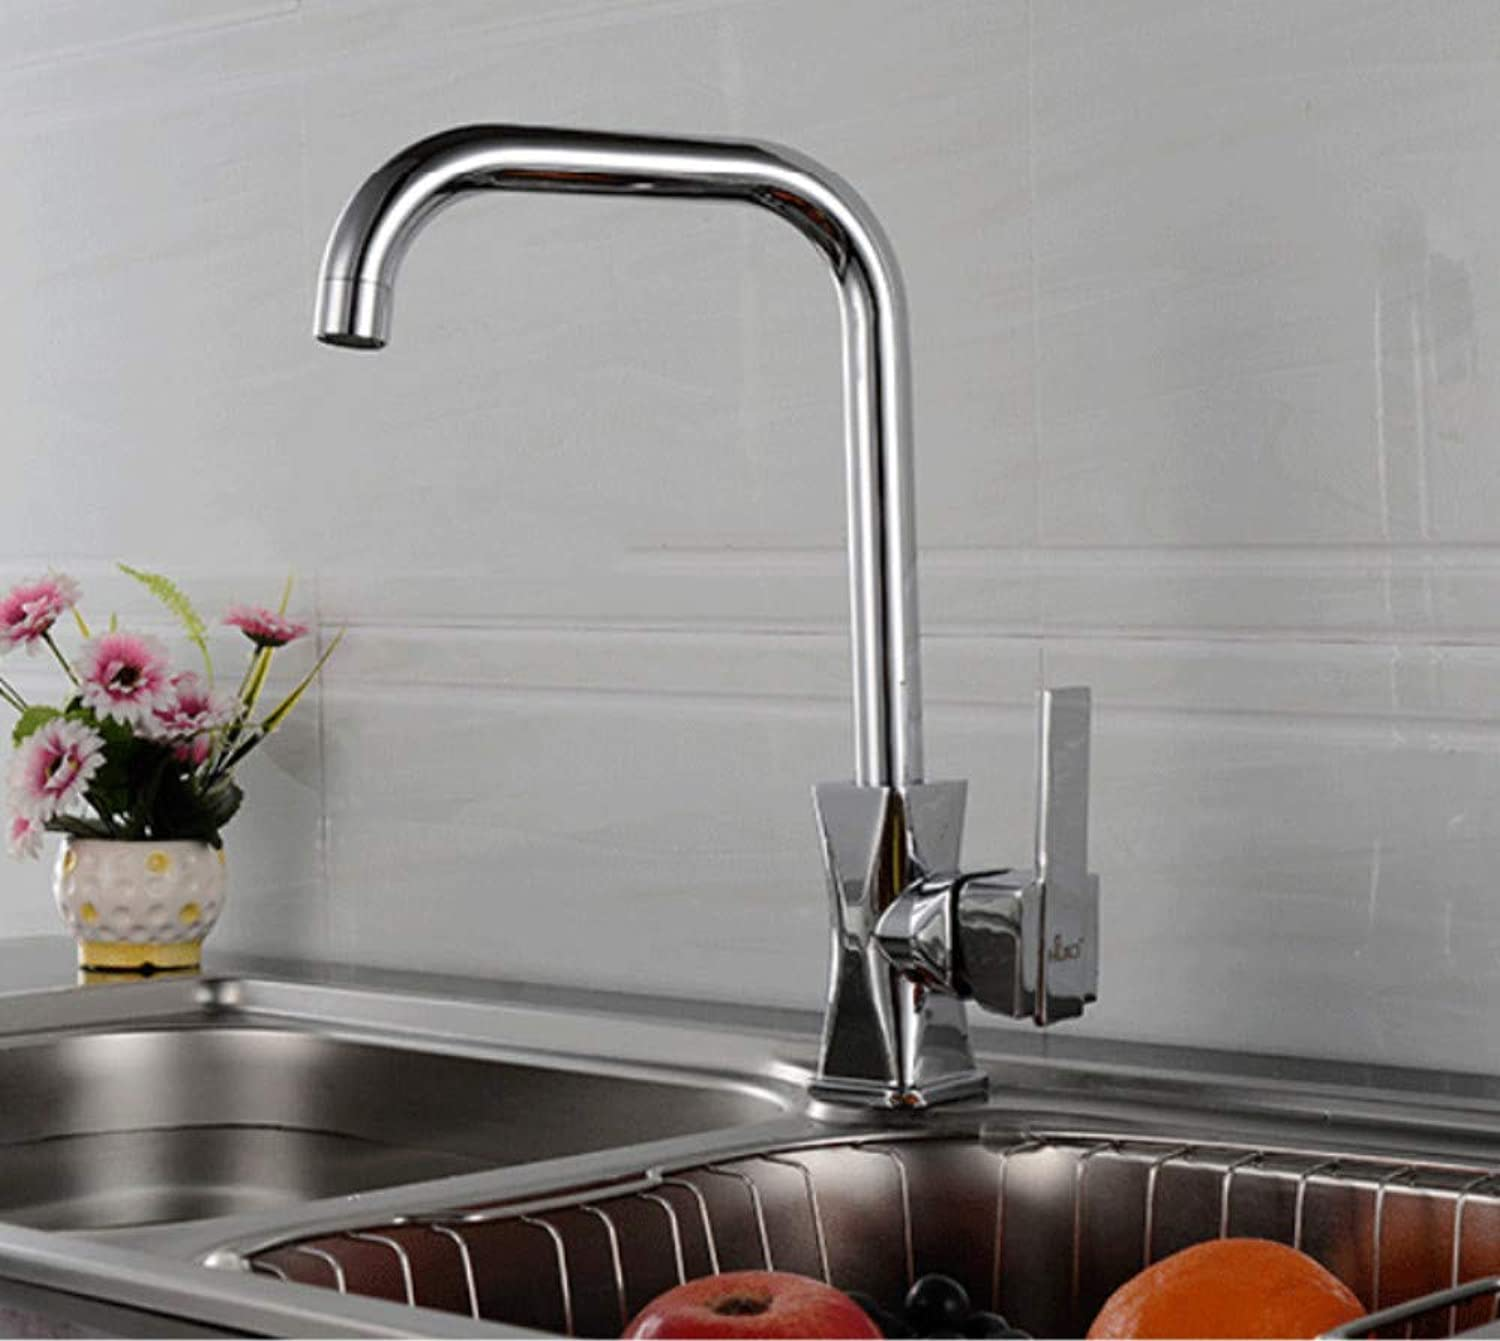 redOOY Taps Faucet Hot And Cold Water Faucet Kitchen Sink Faucet 7 Word Water